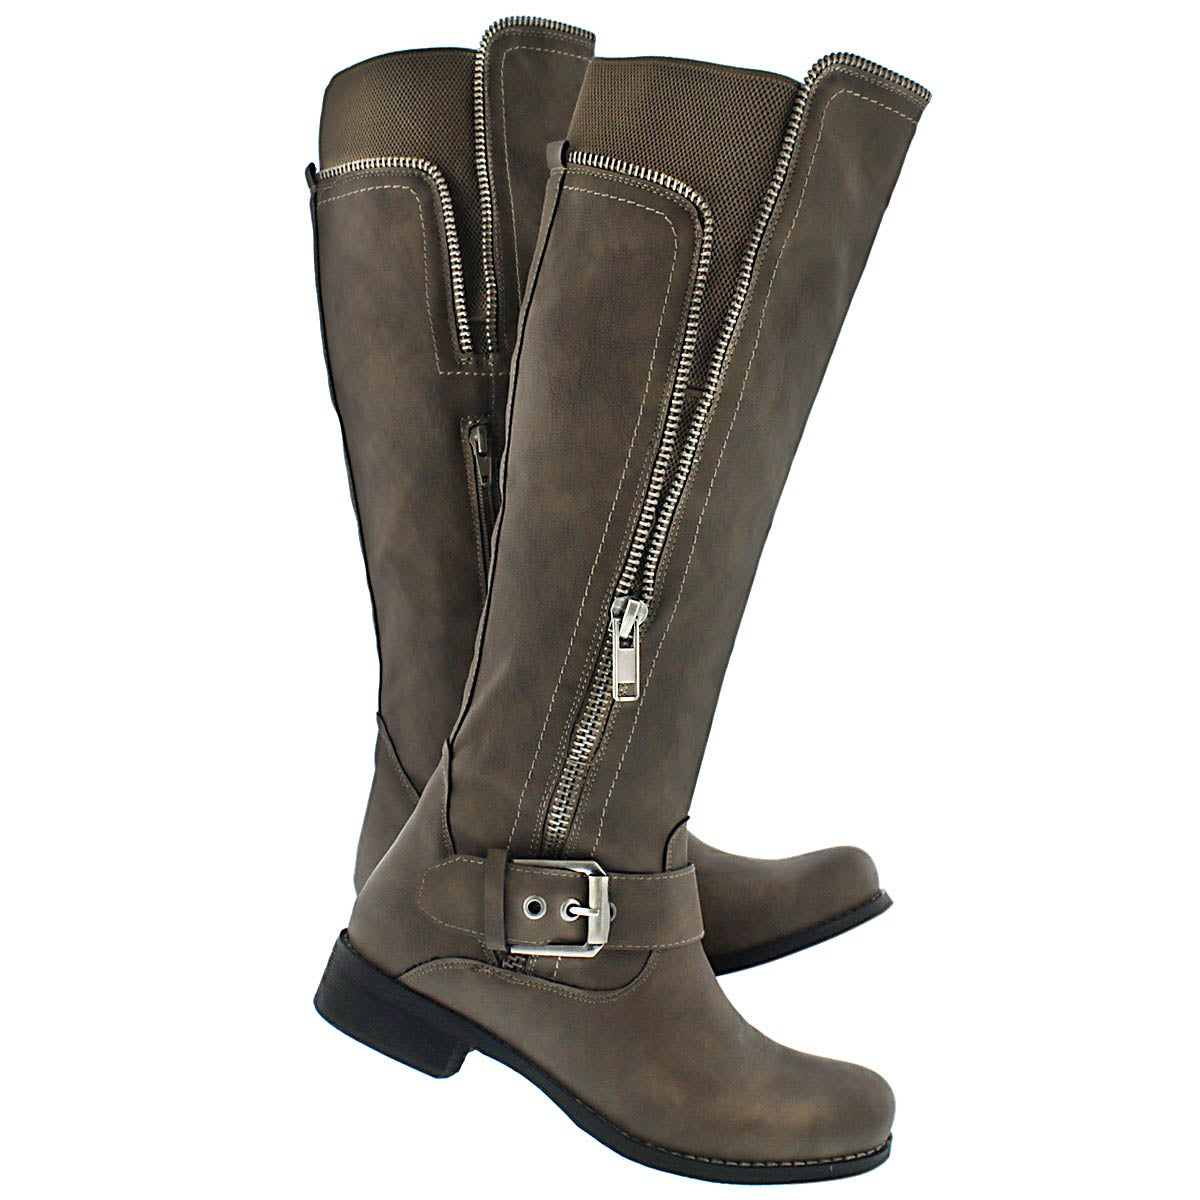 Lds Birgitta taupe riding boot